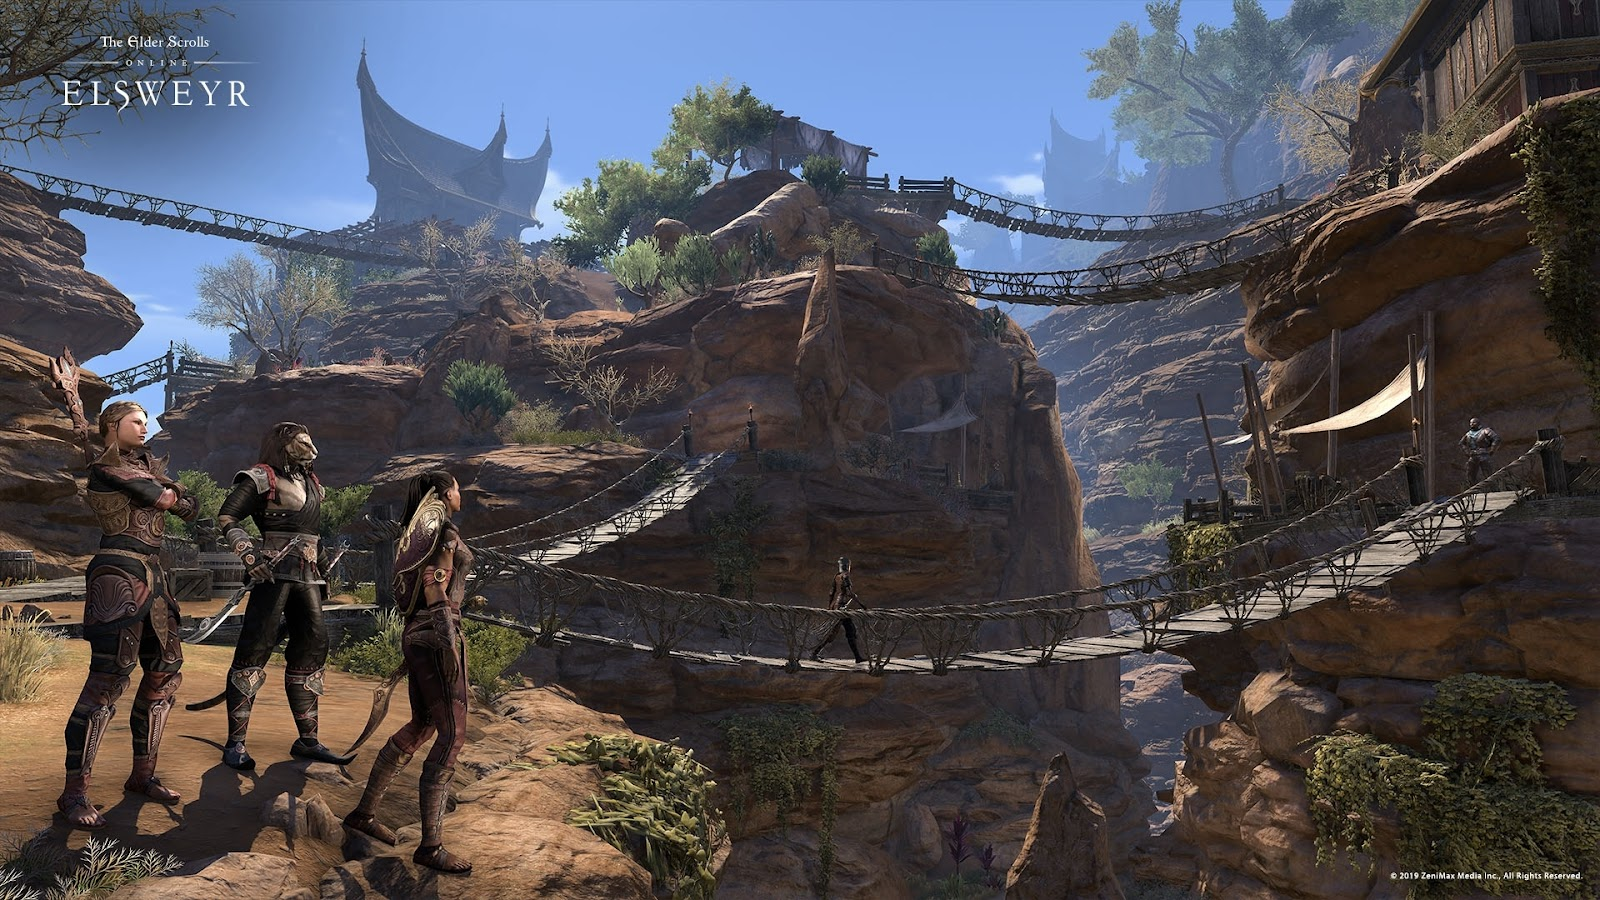 Why The Elder Scrolls Online is better than World of